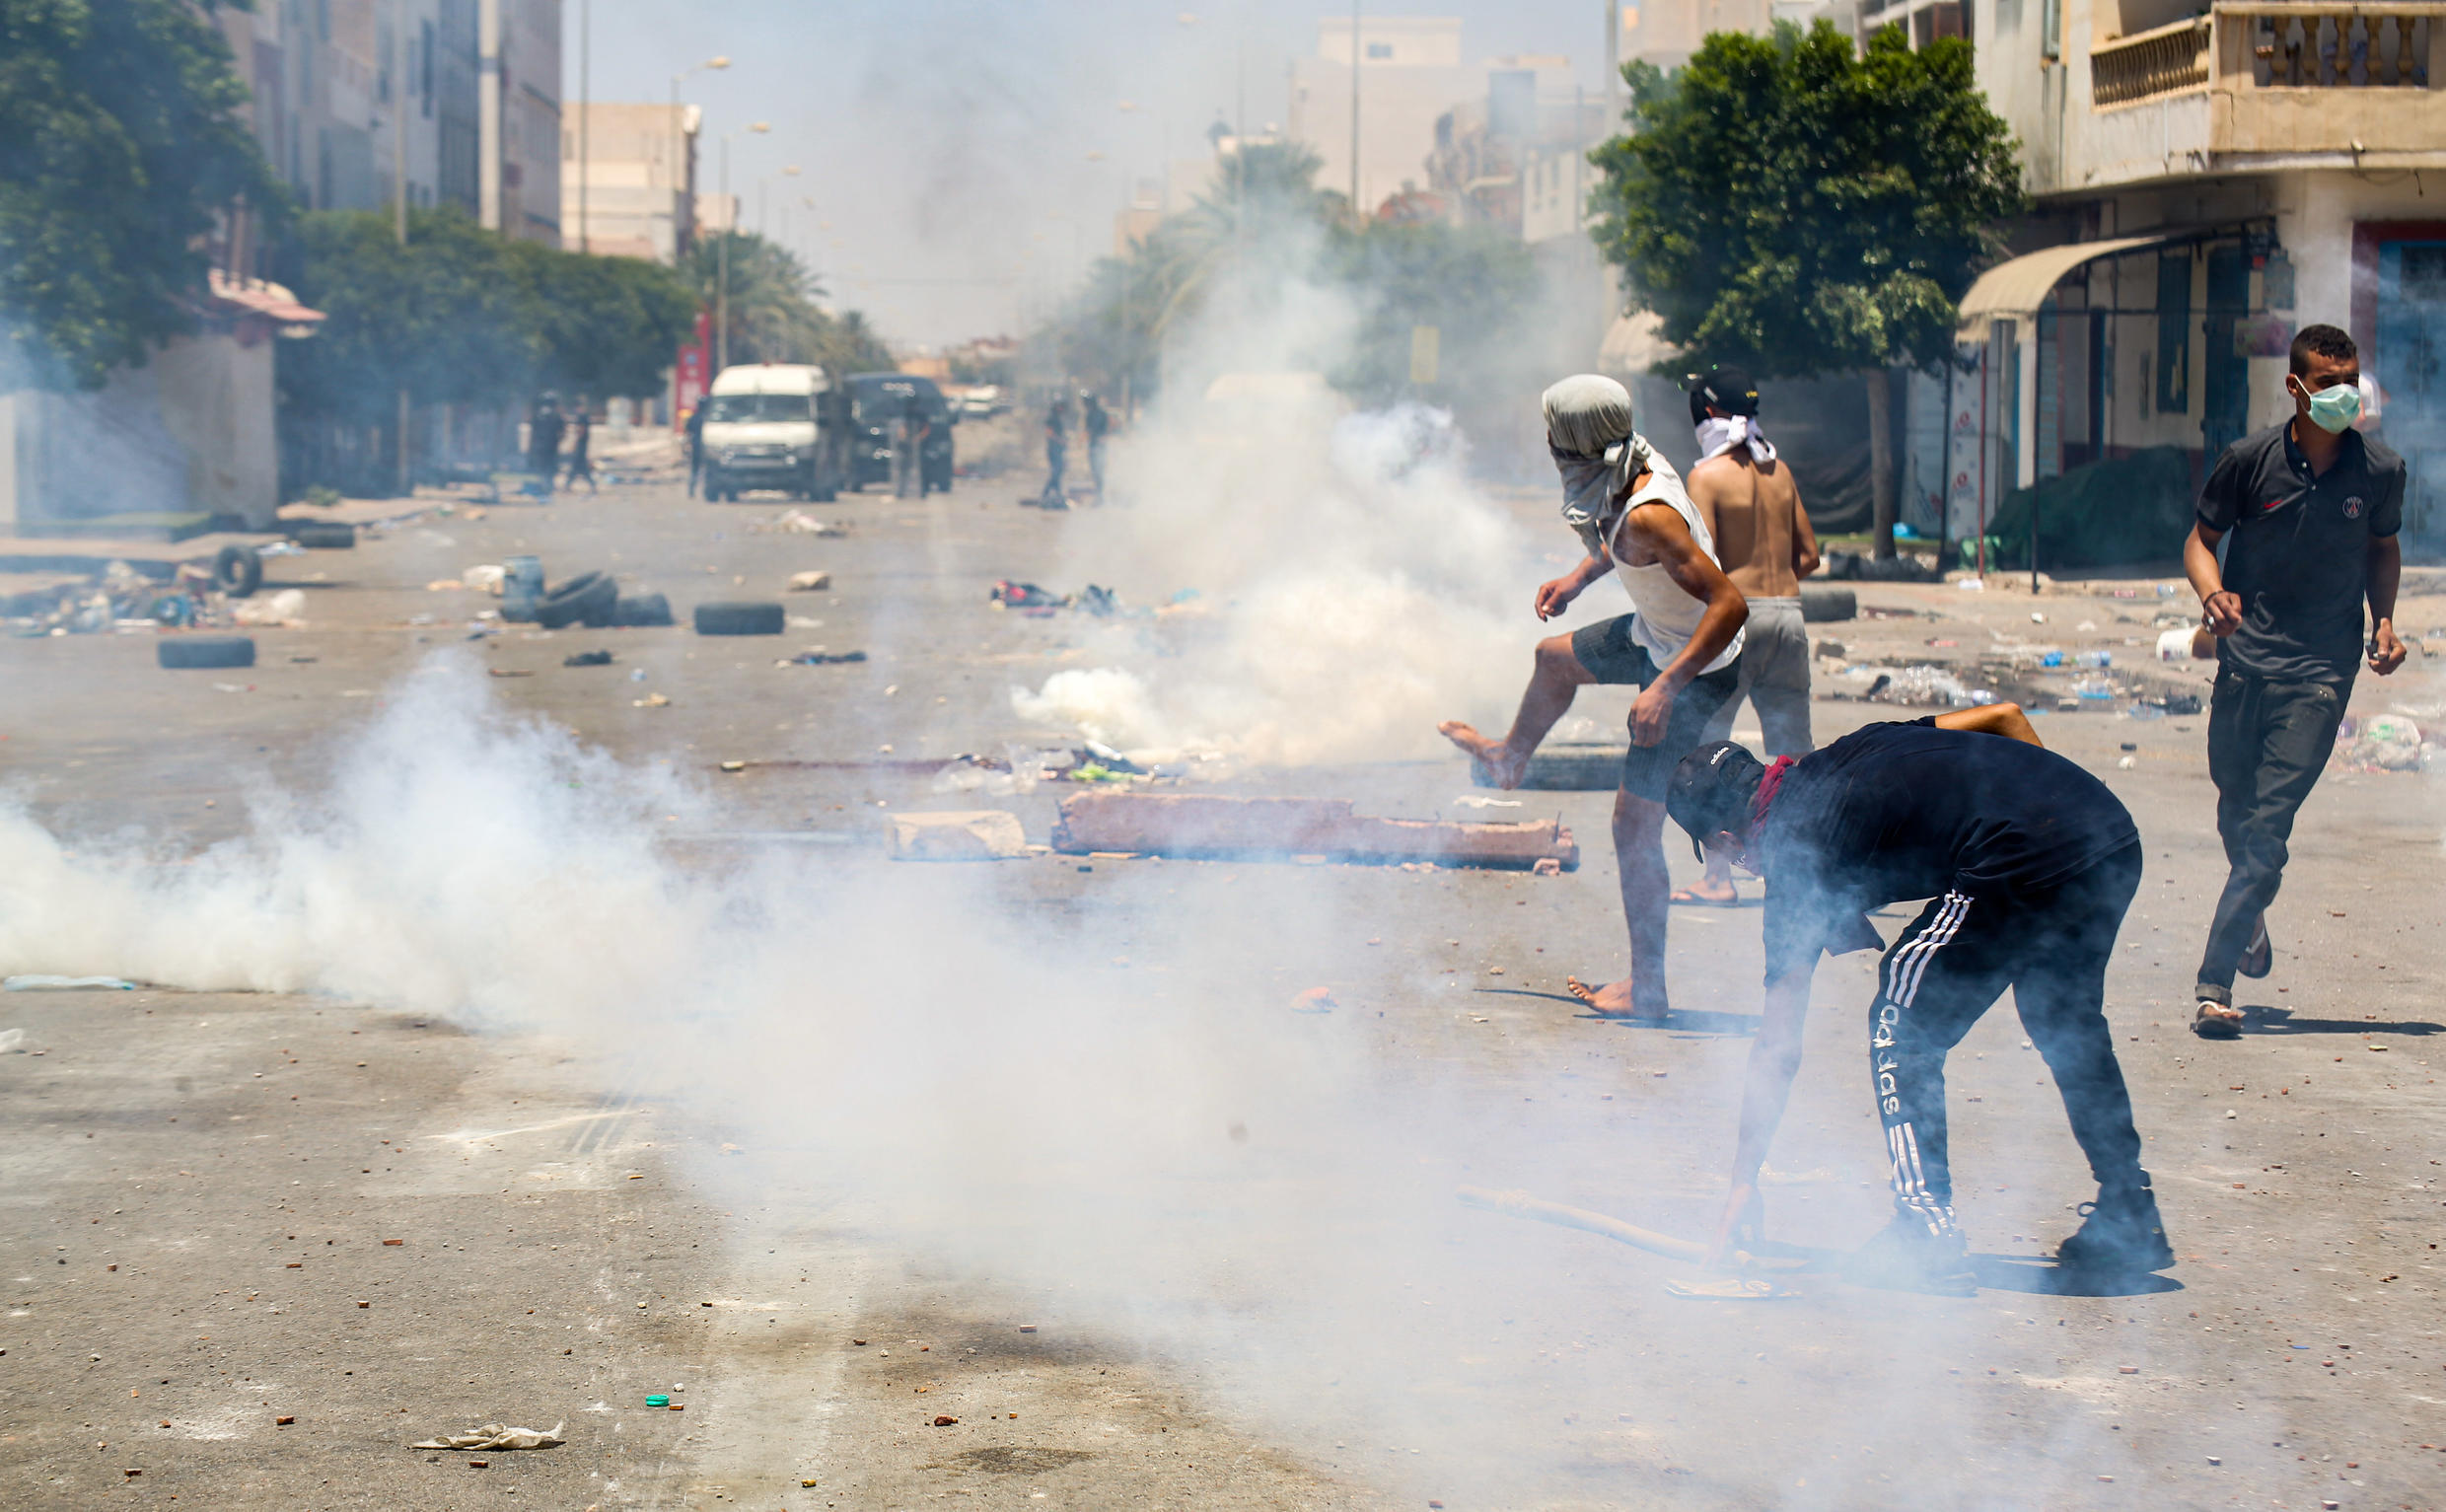 Protesters from Tunisia's Tataouine region throw stones as they clash with security forces, firing tear gas, amidst a demonstration in the southern city on June 21, 2020.